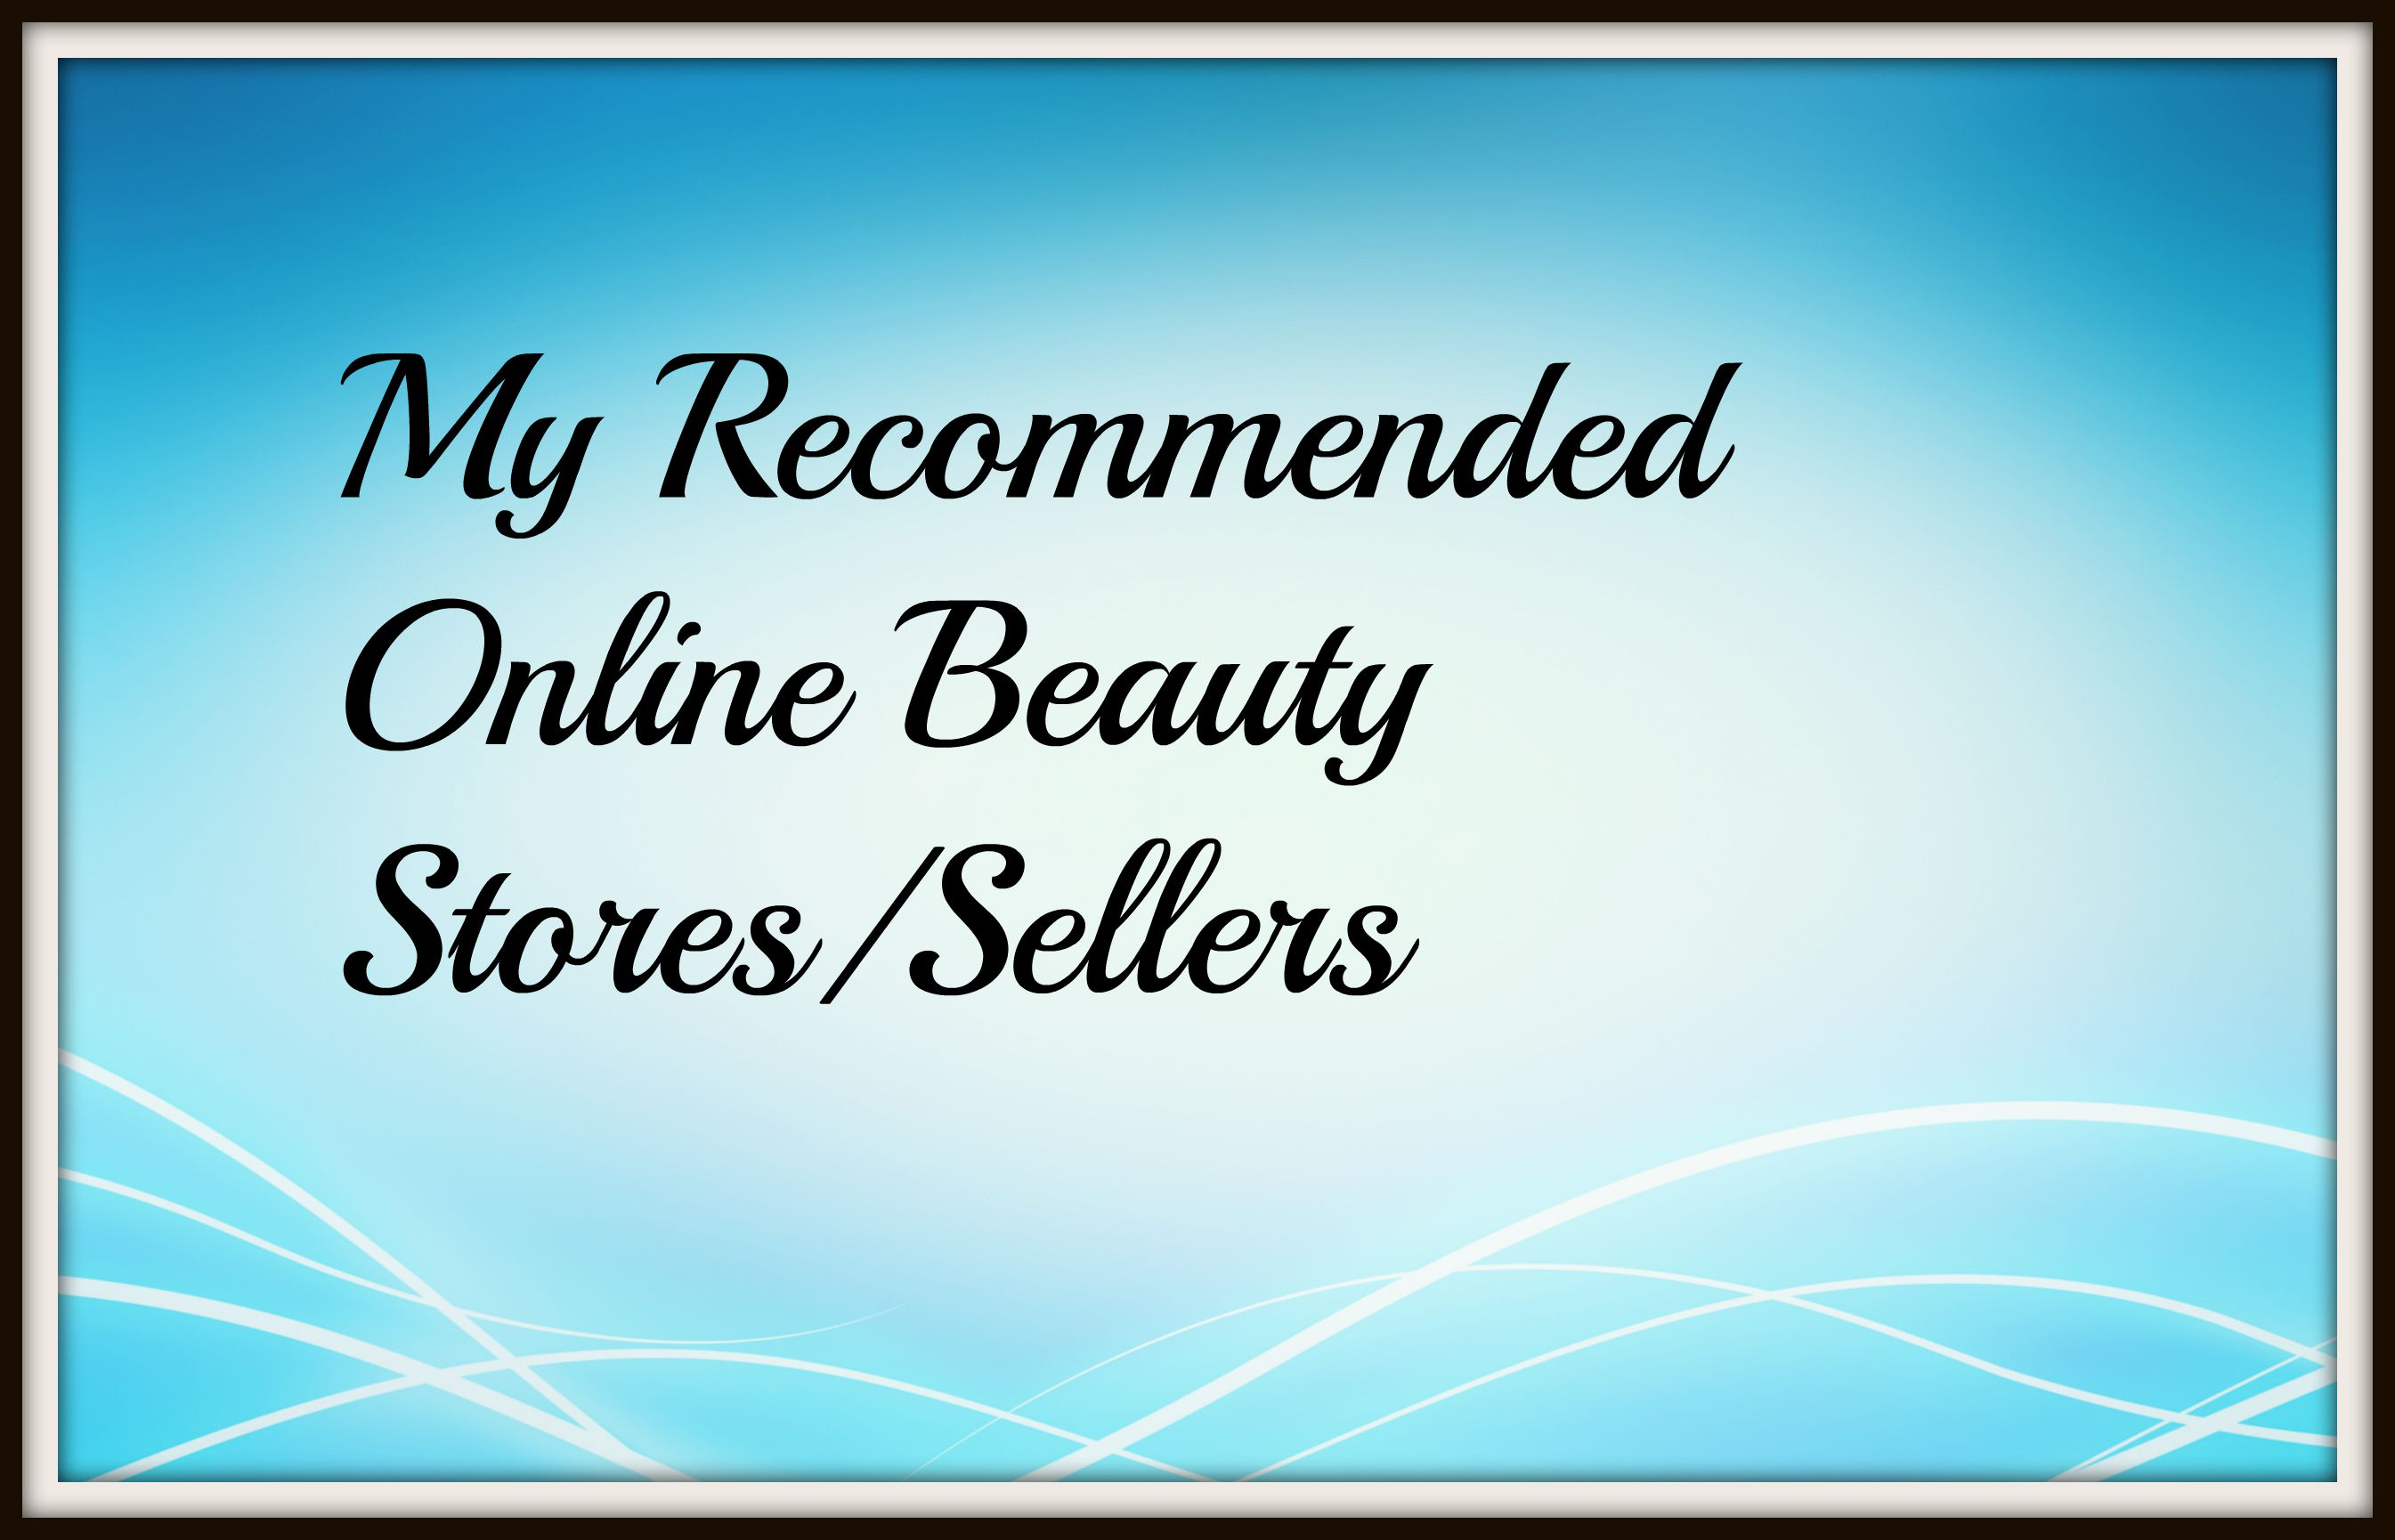 My Recommended Online Beauty Stores/Sellers in U.A.E